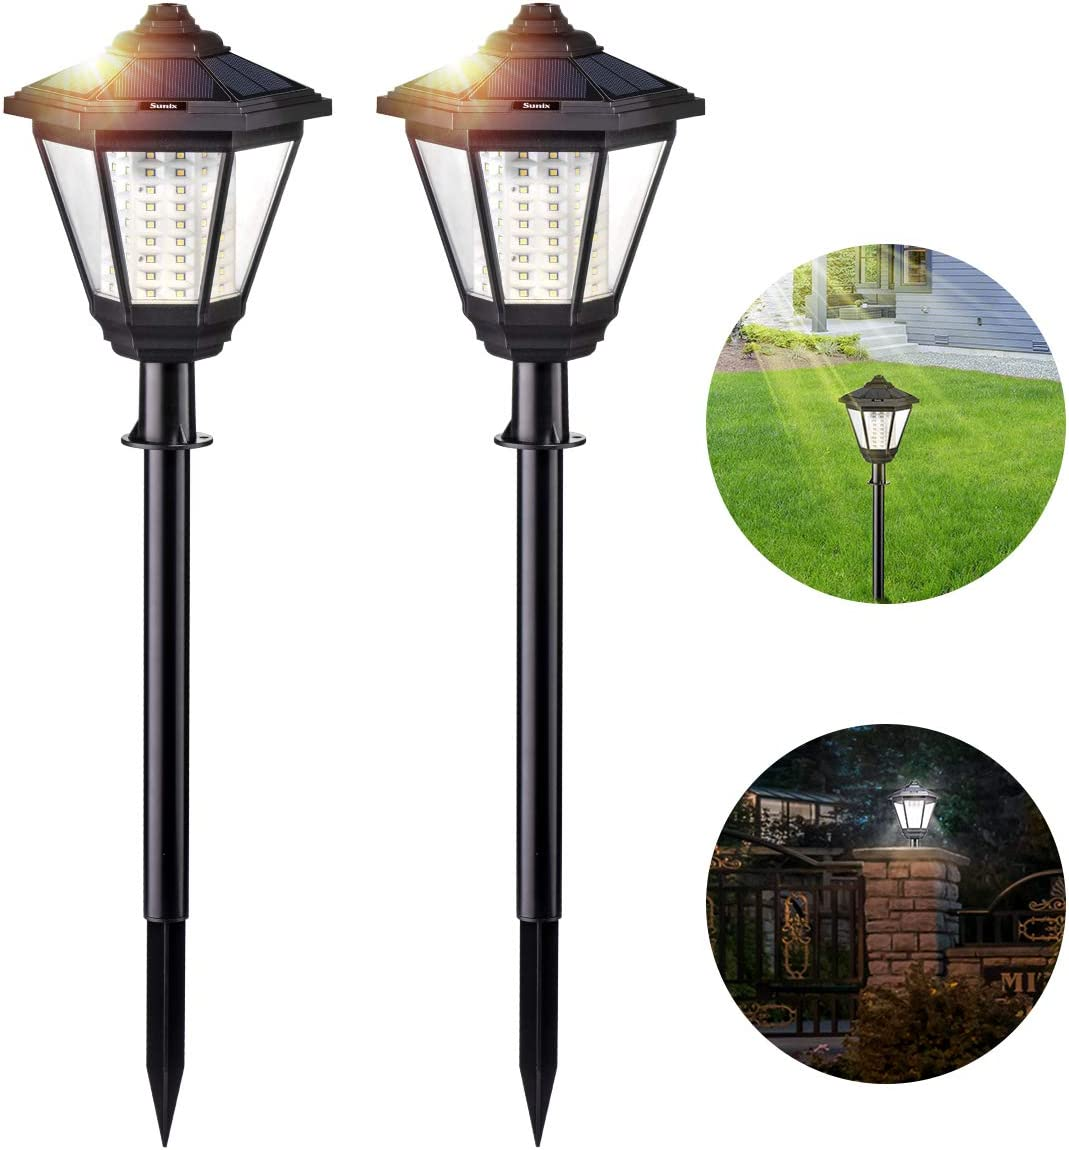 Solar Lights Outdoor, Sunix Radar Motion Sensor 108 LED Waterproof Garden Light Auto On Off Landscape Lighting for Pathway, Driveway, Patio, Yard Decoration 2 Pack